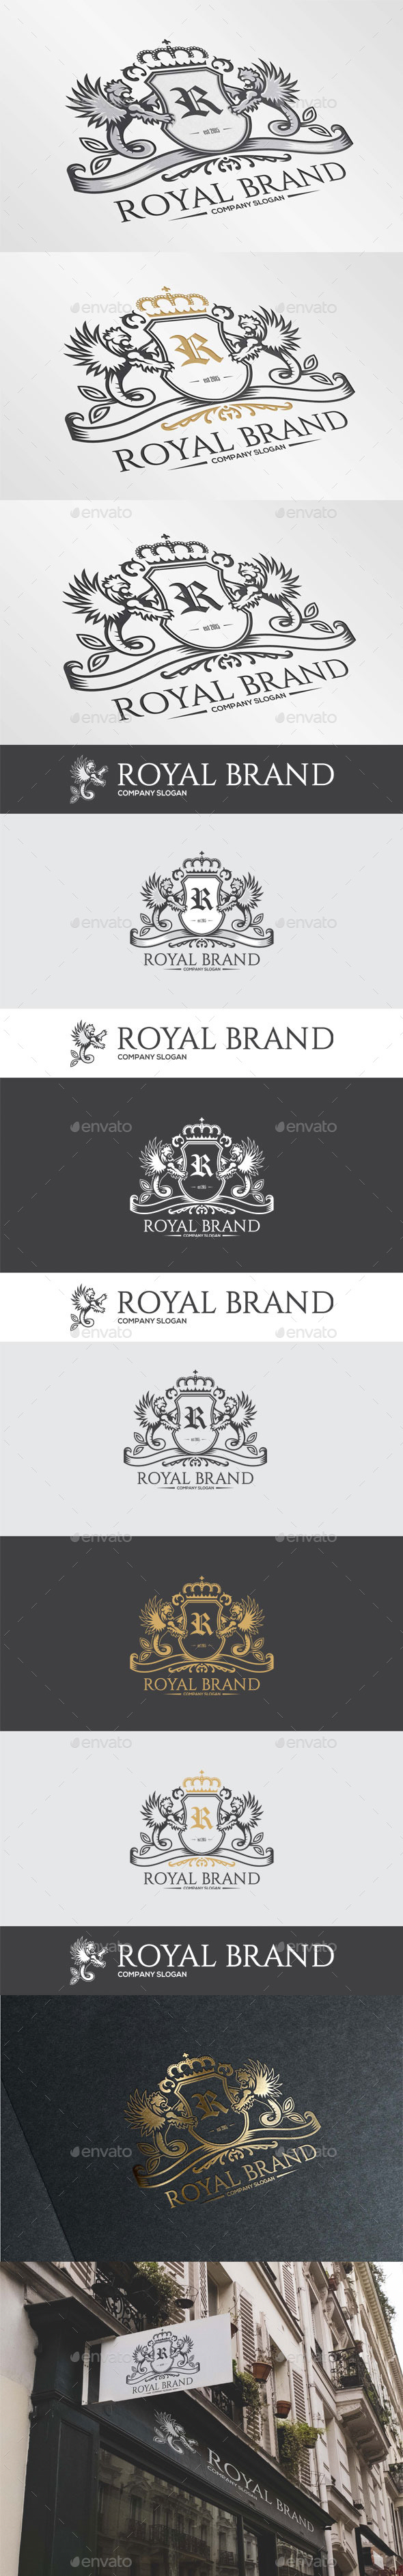 GraphicRiver Royal Brand Heraldy Logo Template 11603509